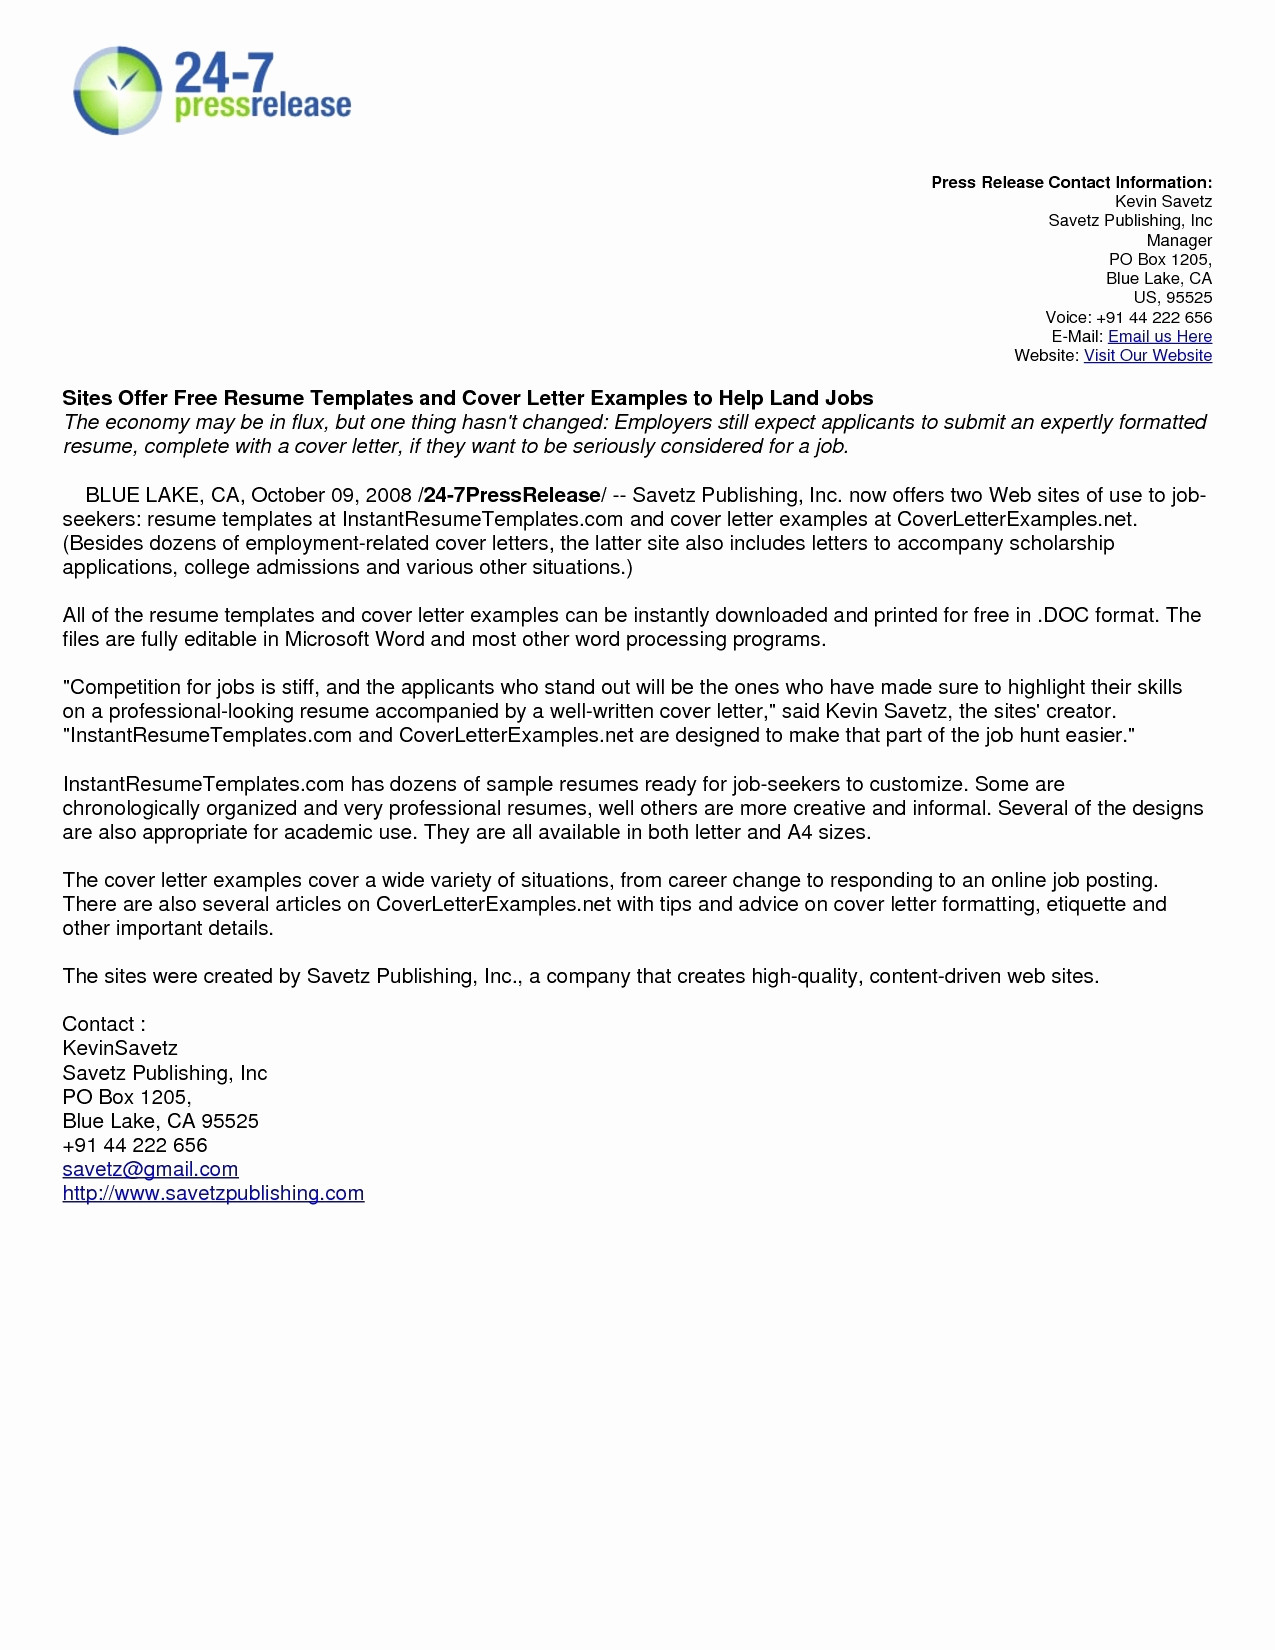 Offer Letter Template Google Docs - Free Resume Templates Google Docs Cover Letter Throughout Jfc Cz as